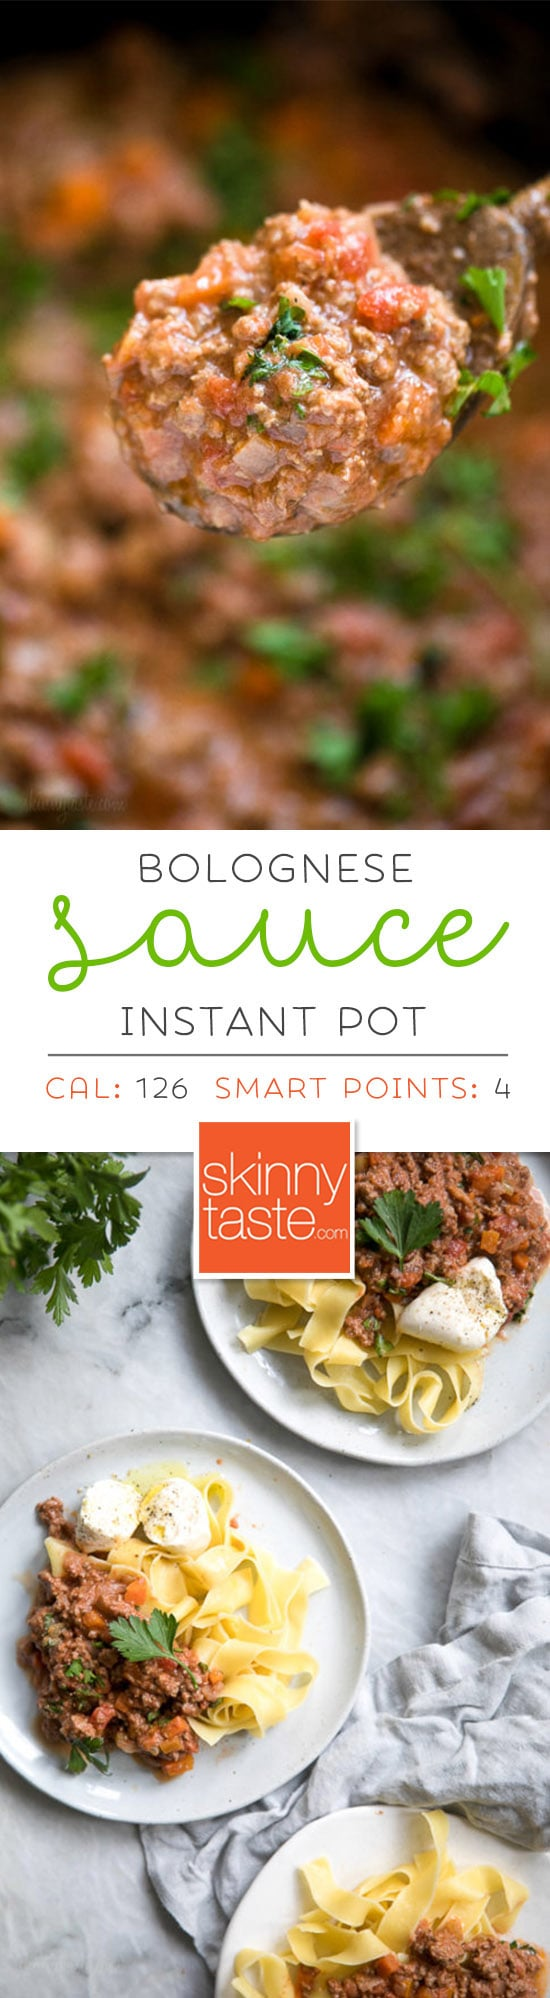 This is the best Bolognese sauce recipe, a staple in my home. It's so easy to make, I always make a big batch for dinner and freeze the rest to use throughout the month – a huge time saver! Making it in the pressure cooker makes this Sunday sauce a dish you can whip up any night of the week! #bolognese #instantpotbolognese #instantpot